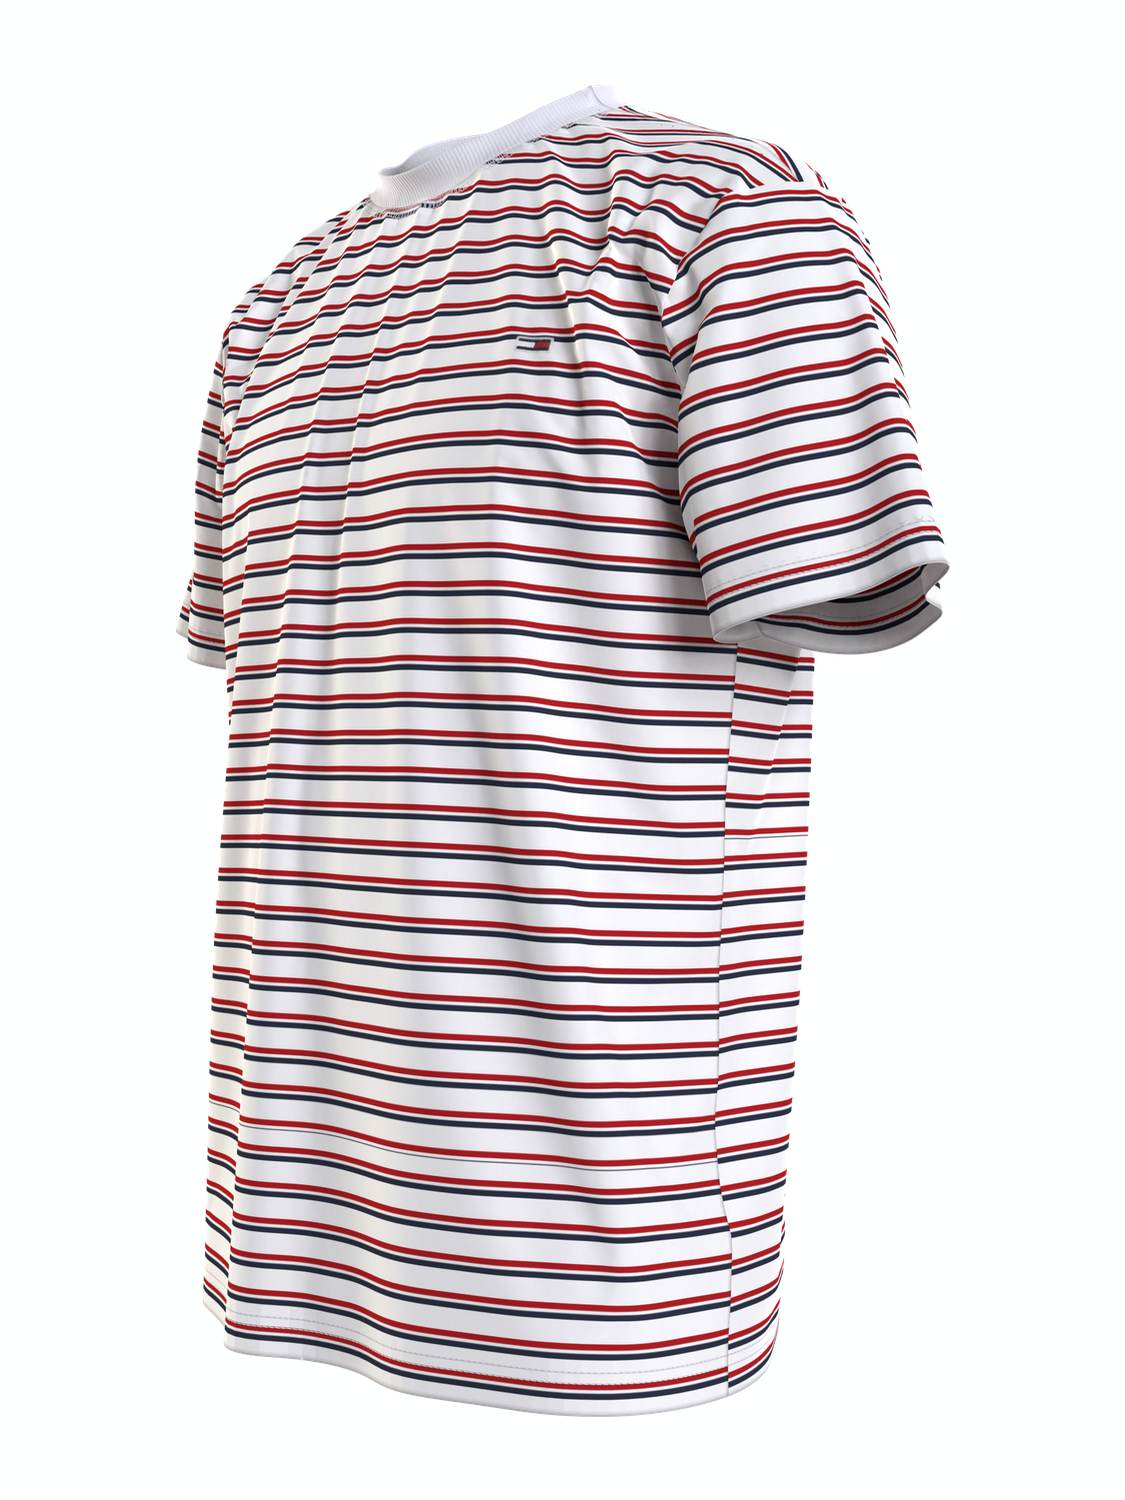 TOMMY HILFIGER T-SHIRT TWO TONE STRIPE MULTI | GATE 36 Hobro